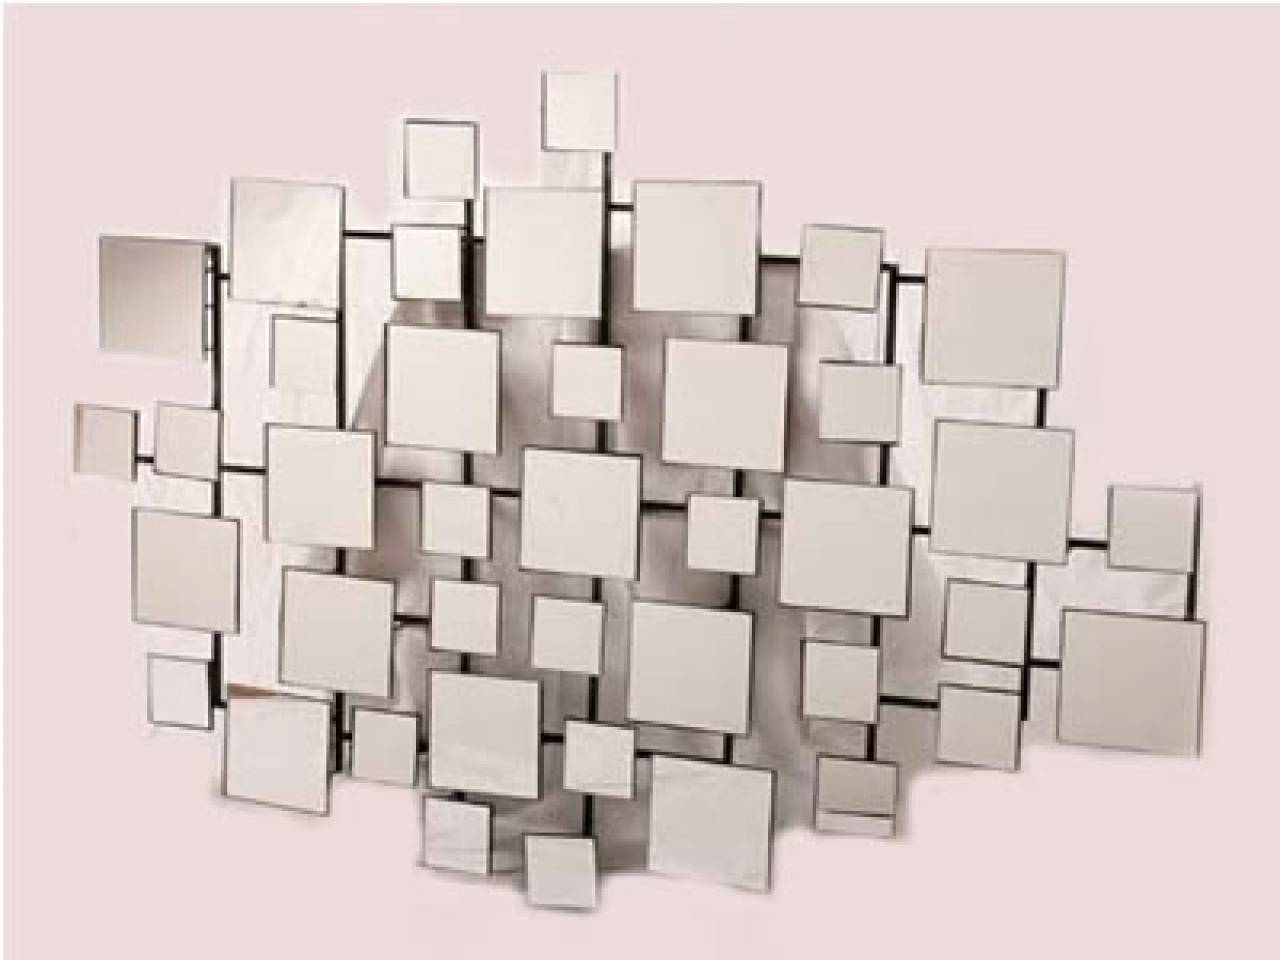 Wall Art Designs: Mirrored Wall Art Geometric Mirror Wall Art Pertaining To Newest Modern Mirror Wall Art (View 19 of 20)